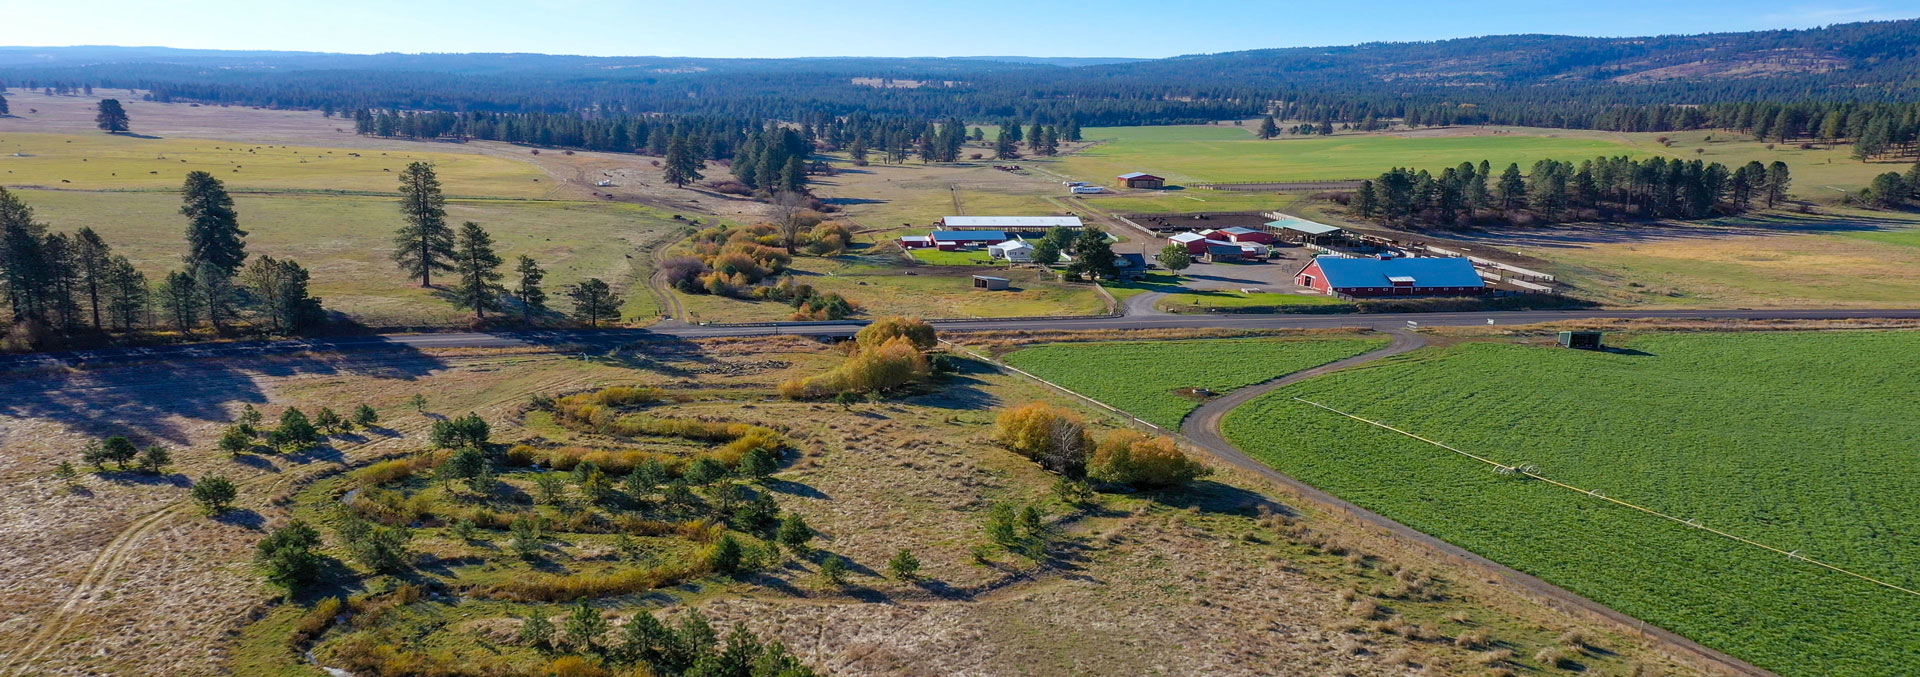 oregon ranch land for sale bear creek valley ranch